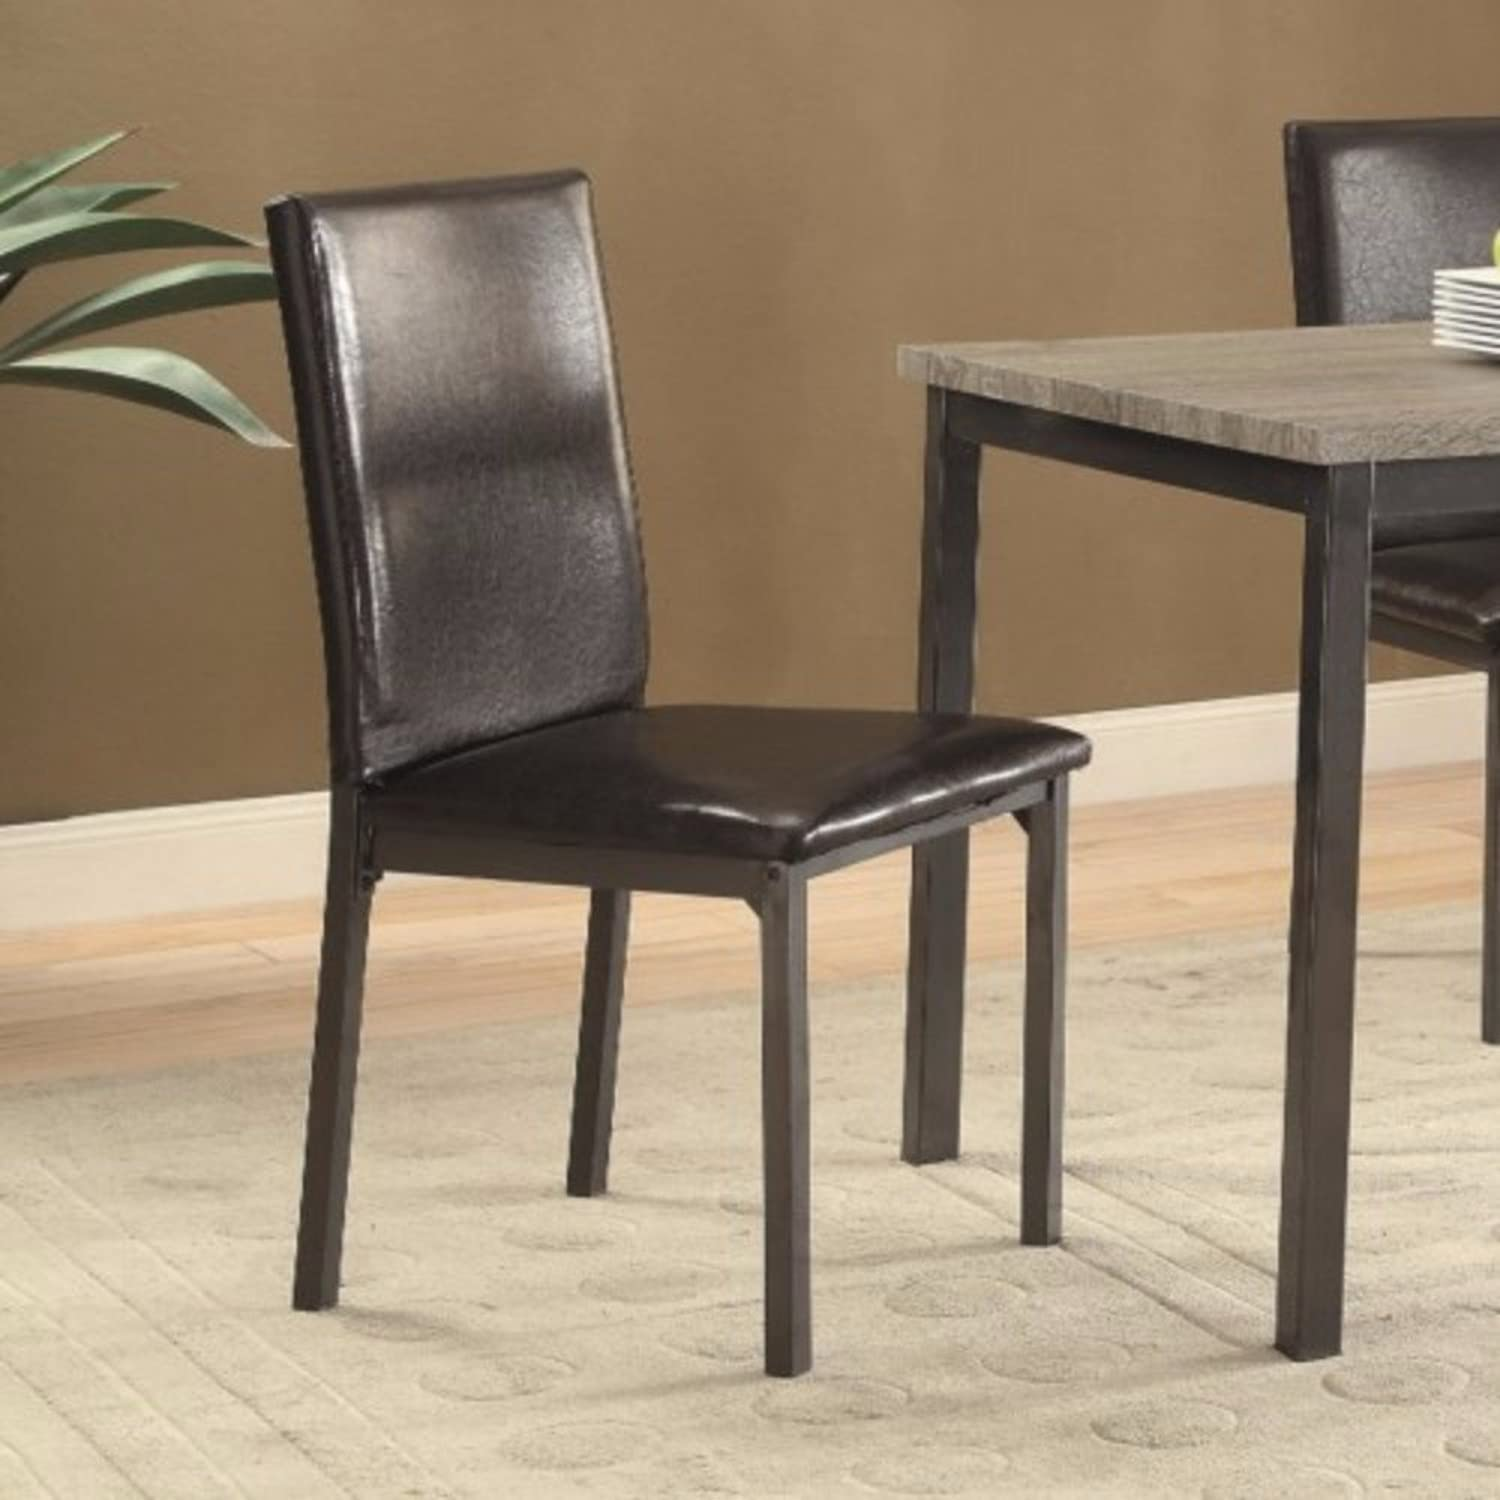 Benzara Contemporary Upholstered Dining Chair with Full Back, Set of 2, Black